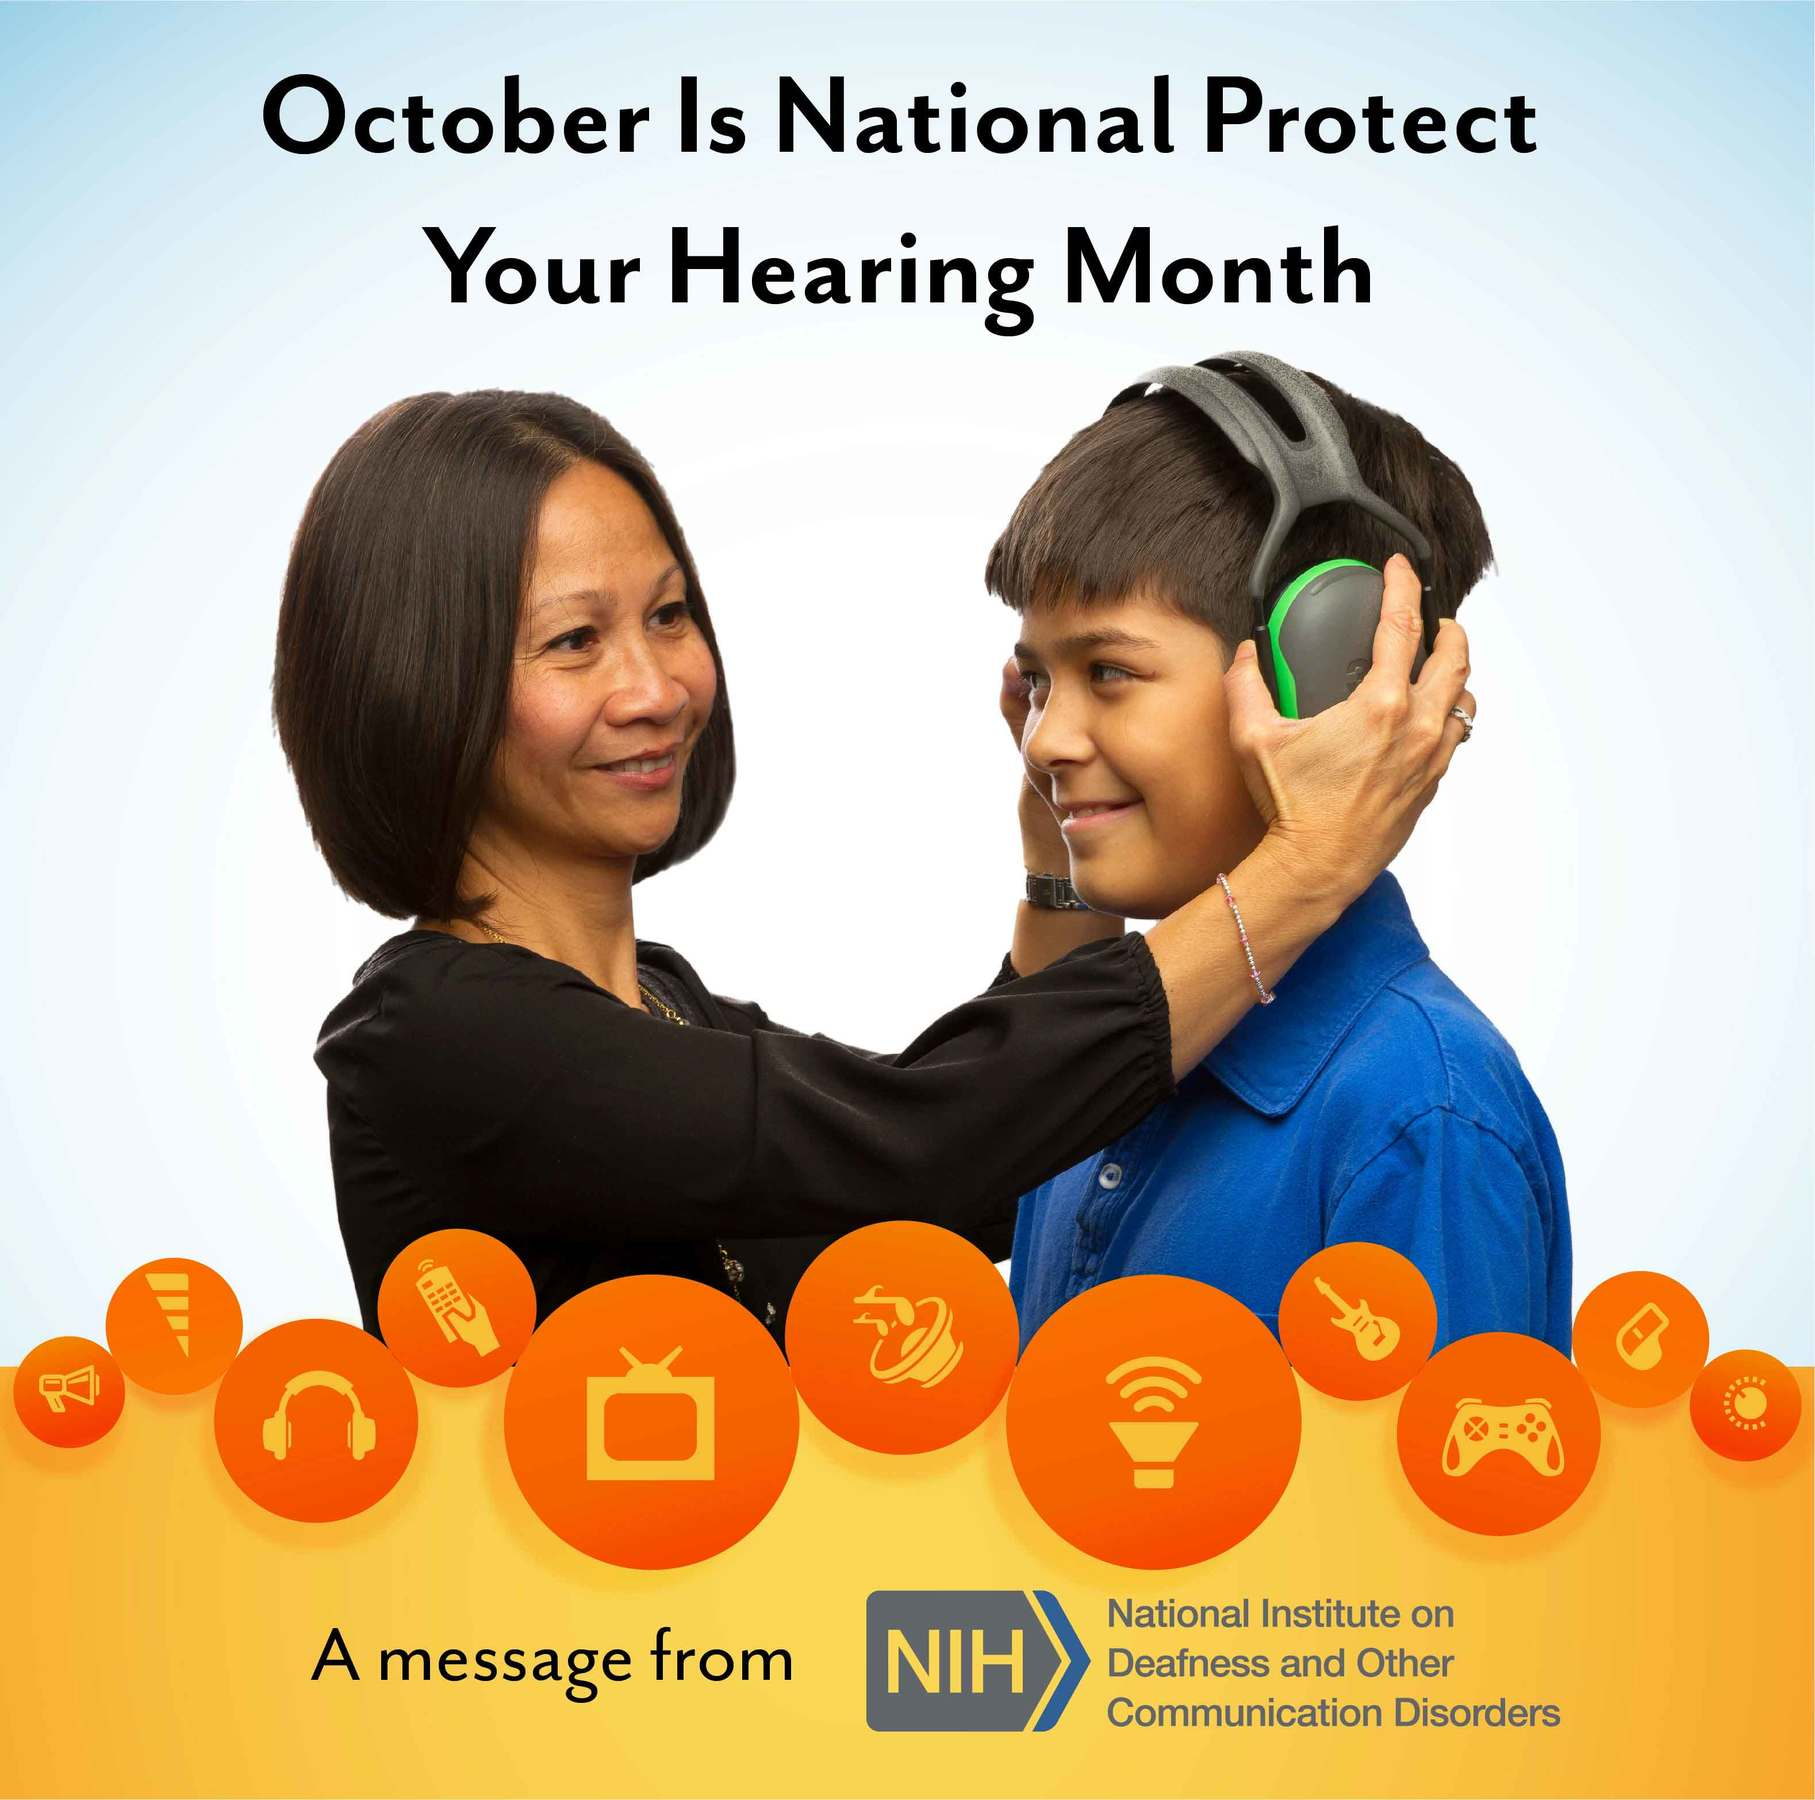 October Is National Protect Your Hearing Month. A message from National Institutes of Health/National Institute on Deafness and Other Communication Disorders logo. Woman placing protective earmuffs on preteen boy.